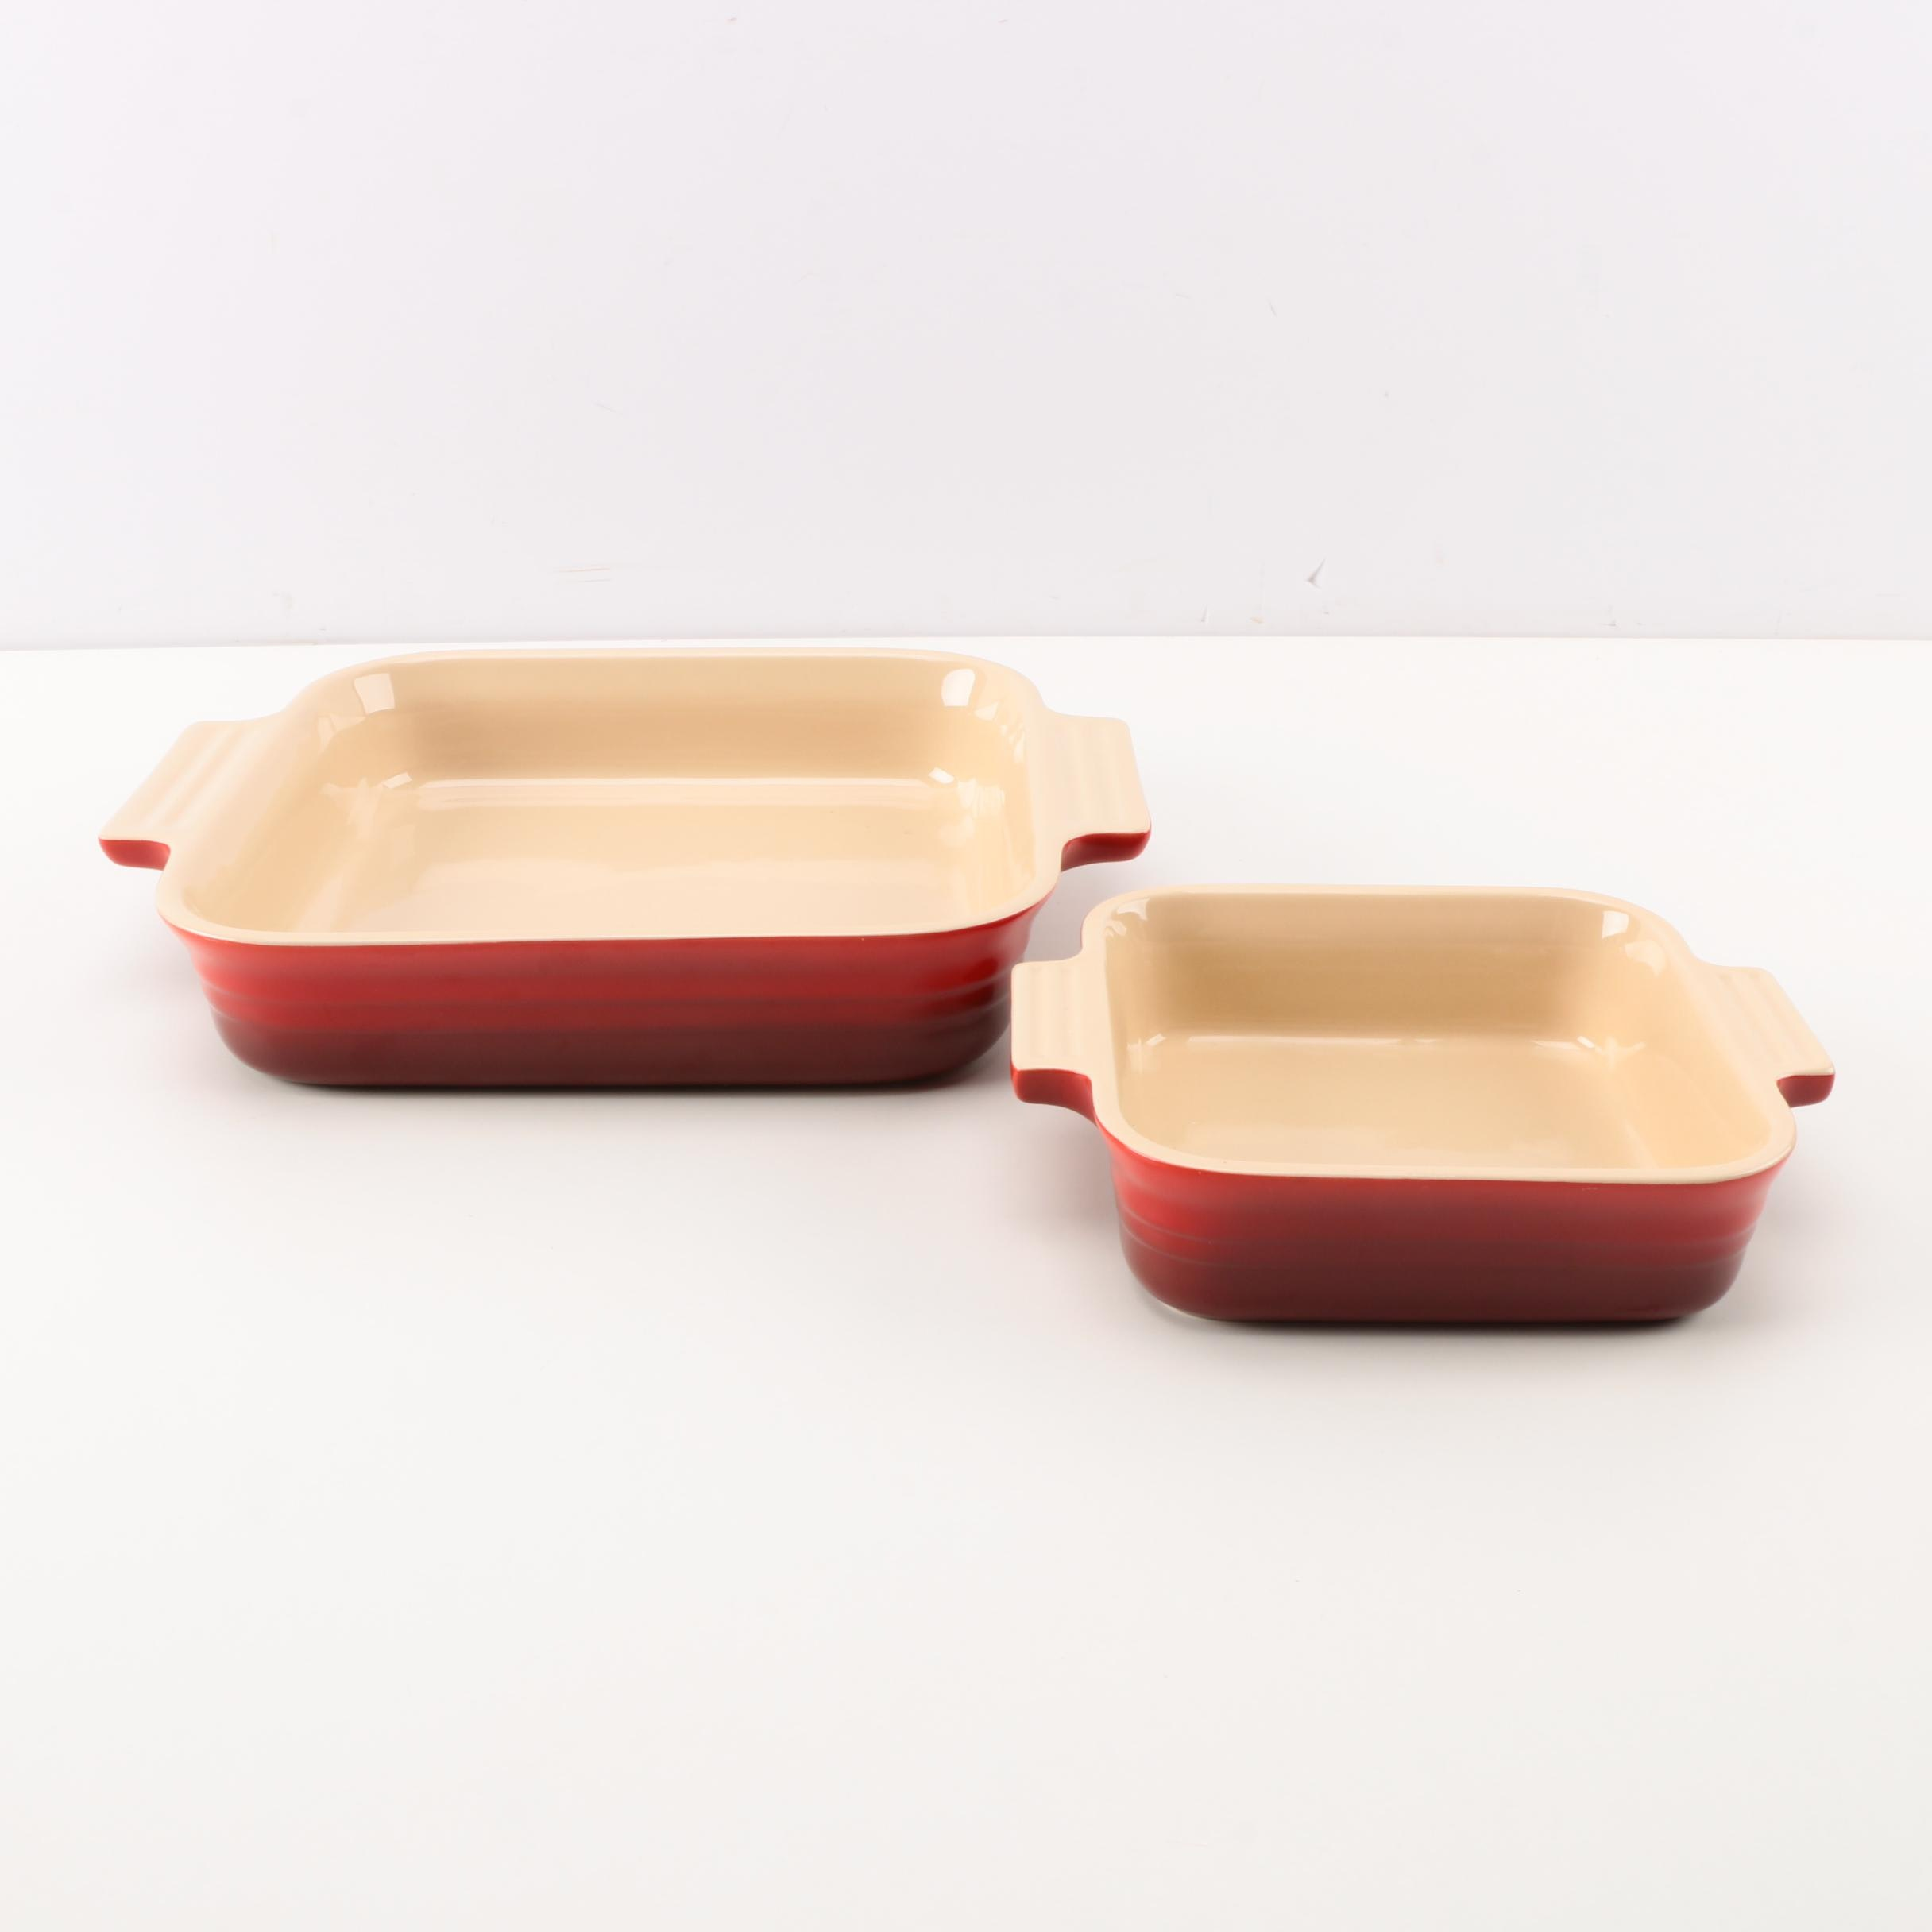 Le Creuset Stoneware Baking Dishes